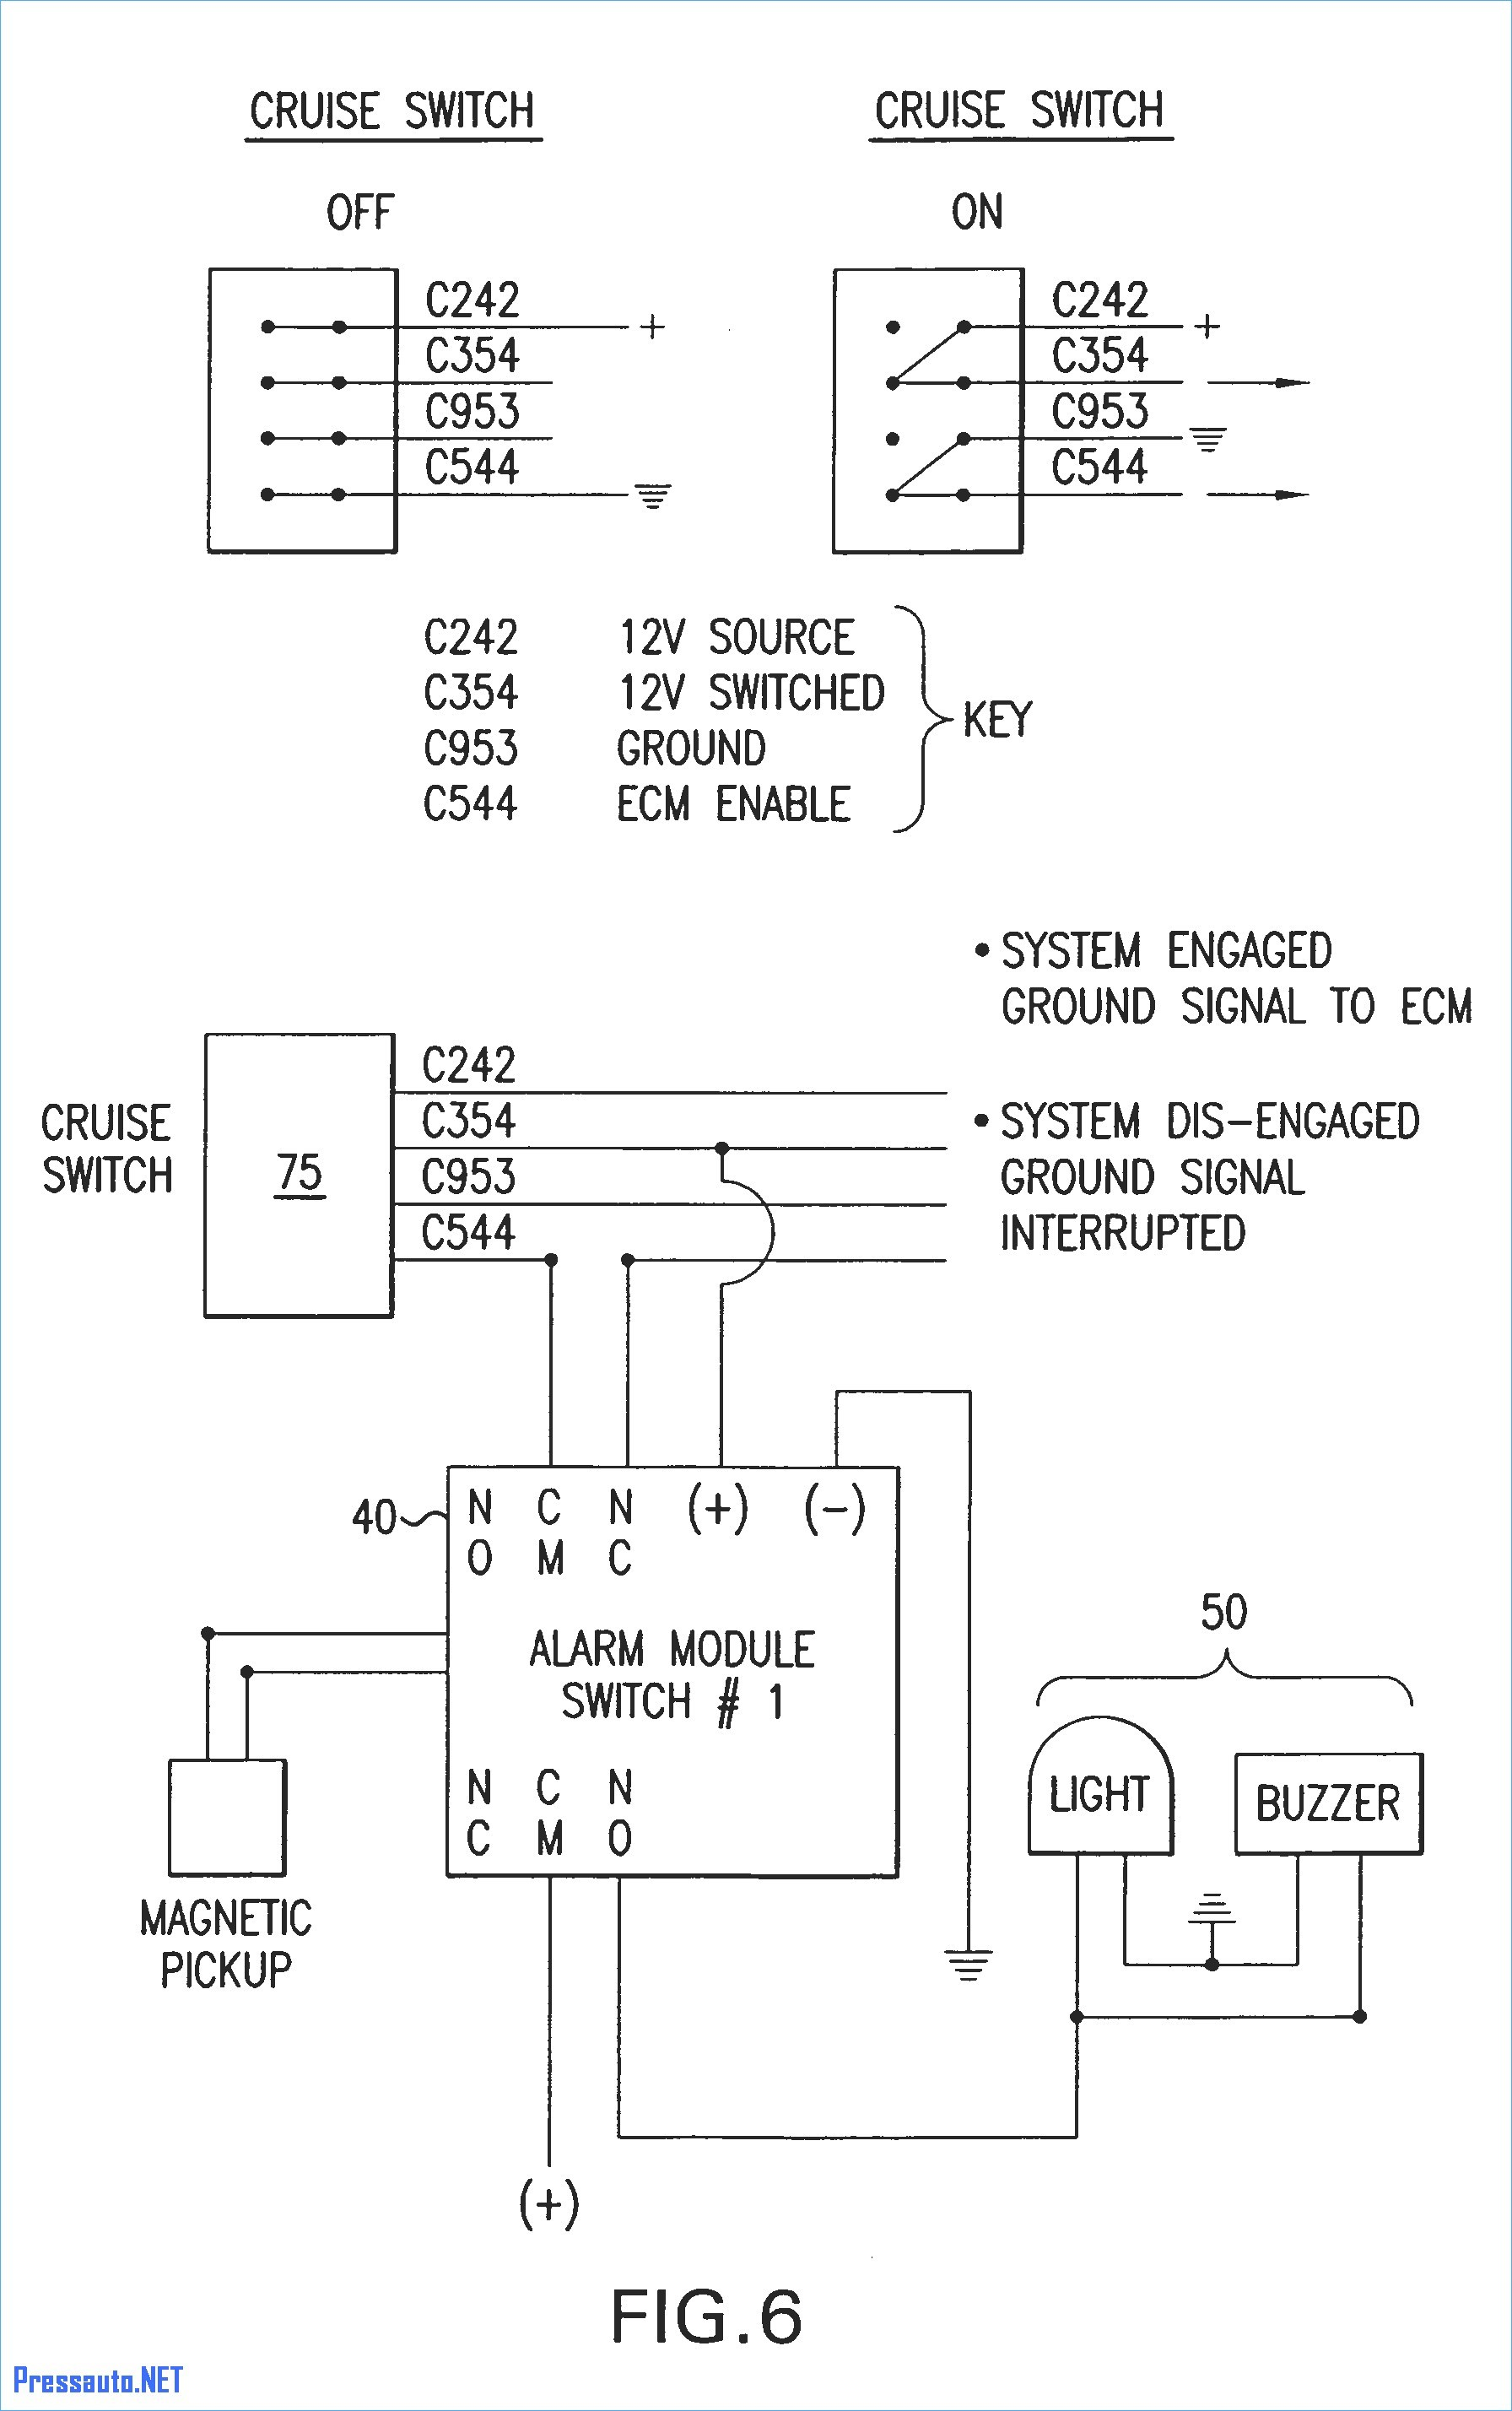 Peterbilt Air Brake System Diagram Peterbilt Light Wiring Diagram Wiring Diagrams Of Peterbilt Air Brake System Diagram